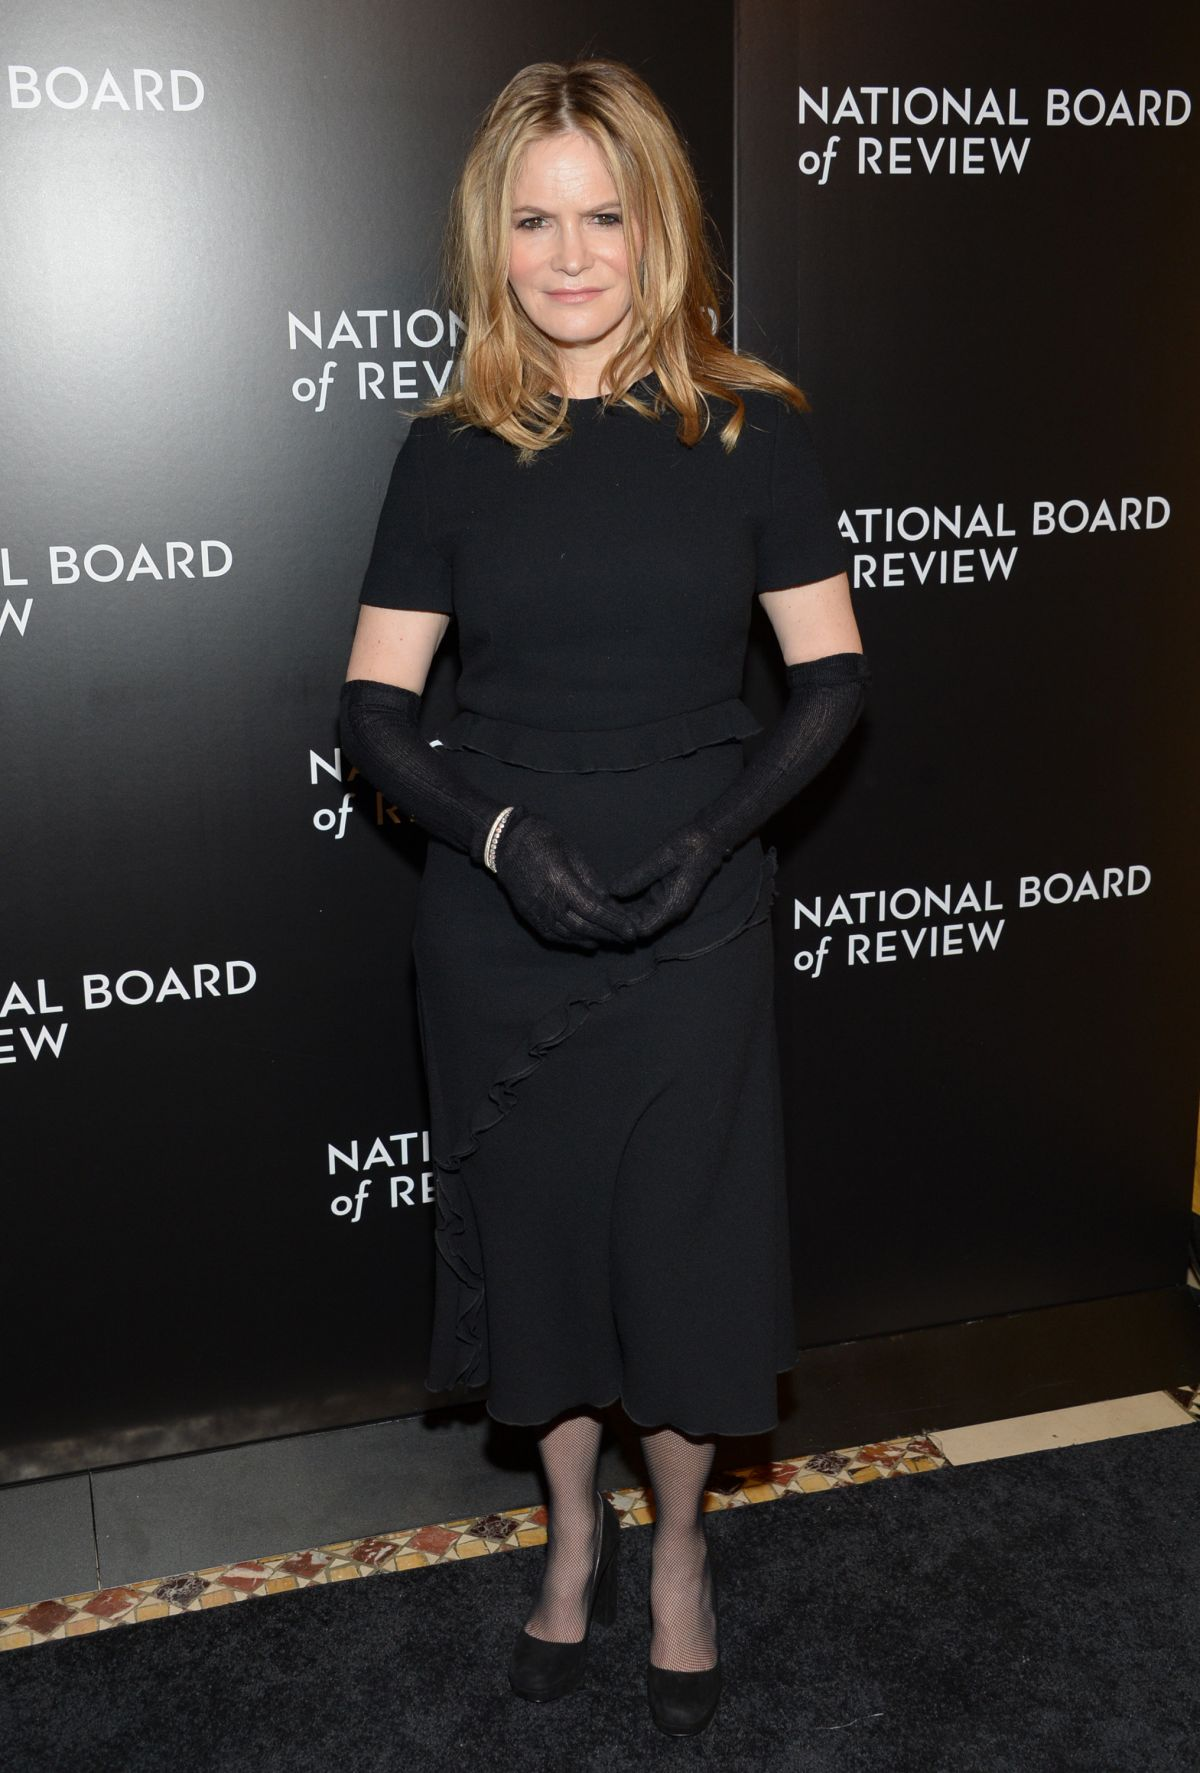 JENNIFER JASON LEIGH at 2015 National Board of Review Gala in New York 01/05/2016